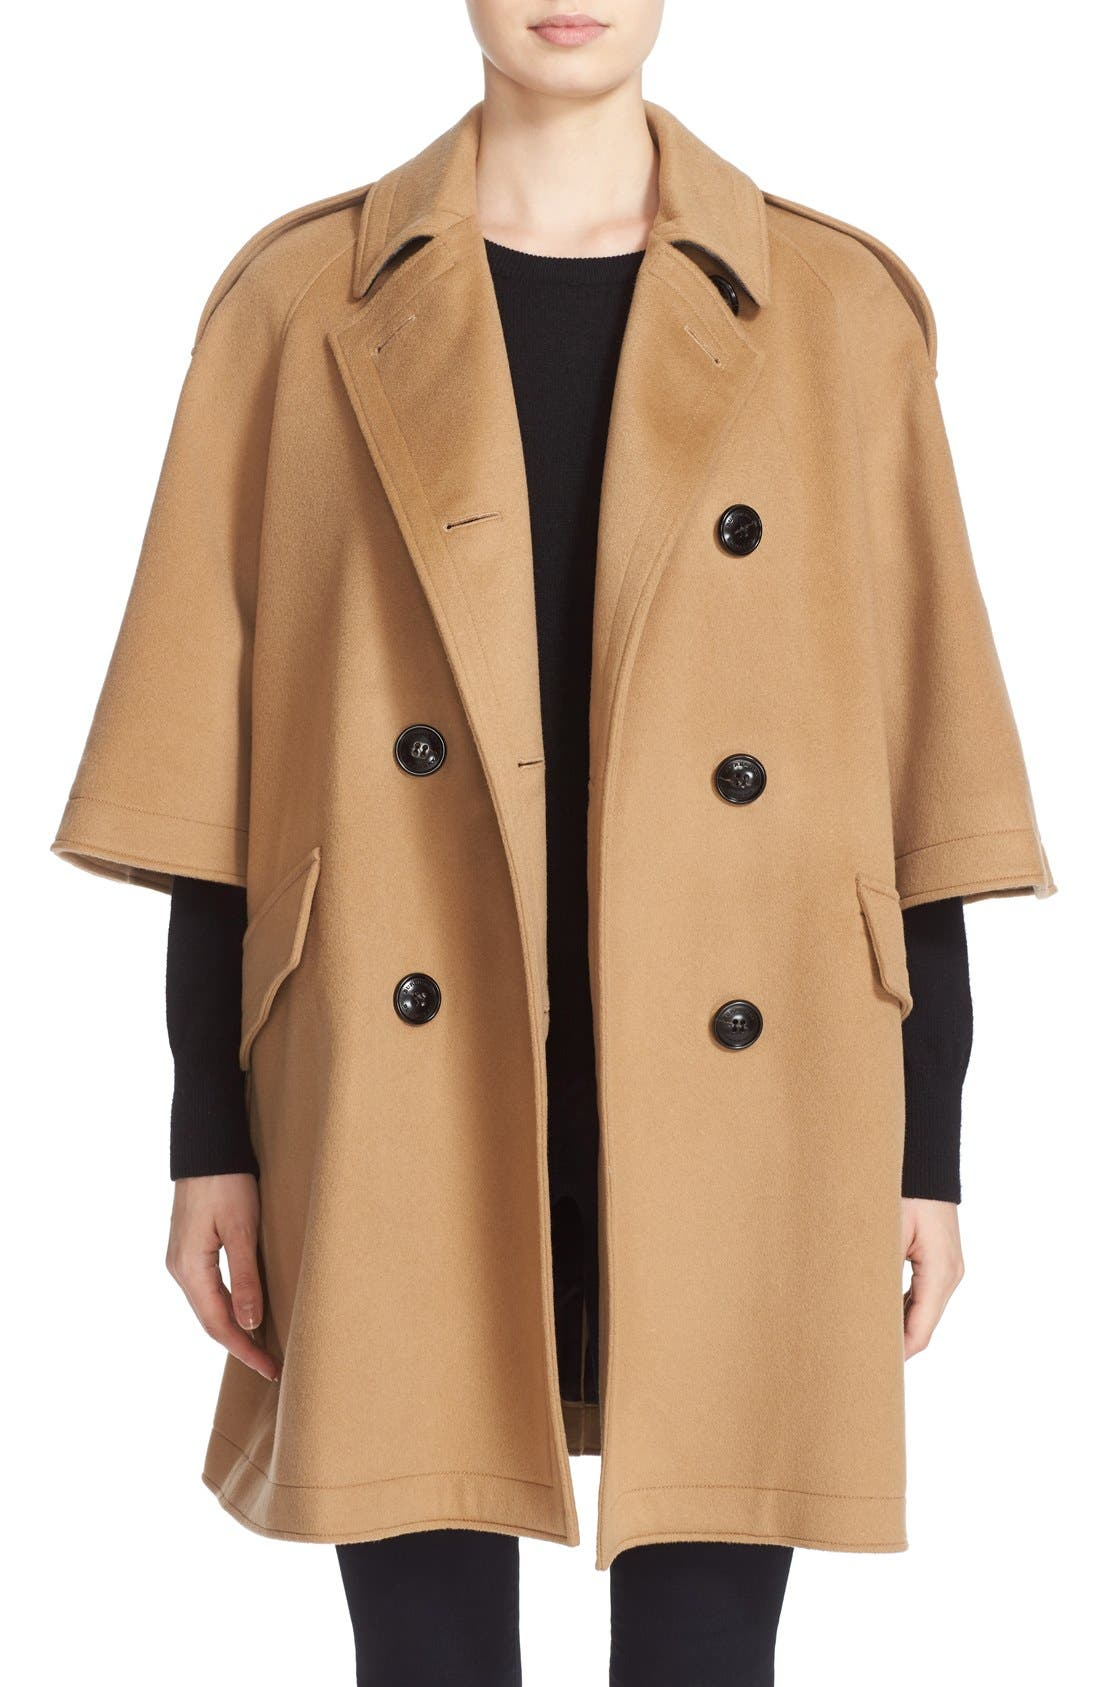 Dennington Trench Cape Coat,                             Main thumbnail 1, color,                             231